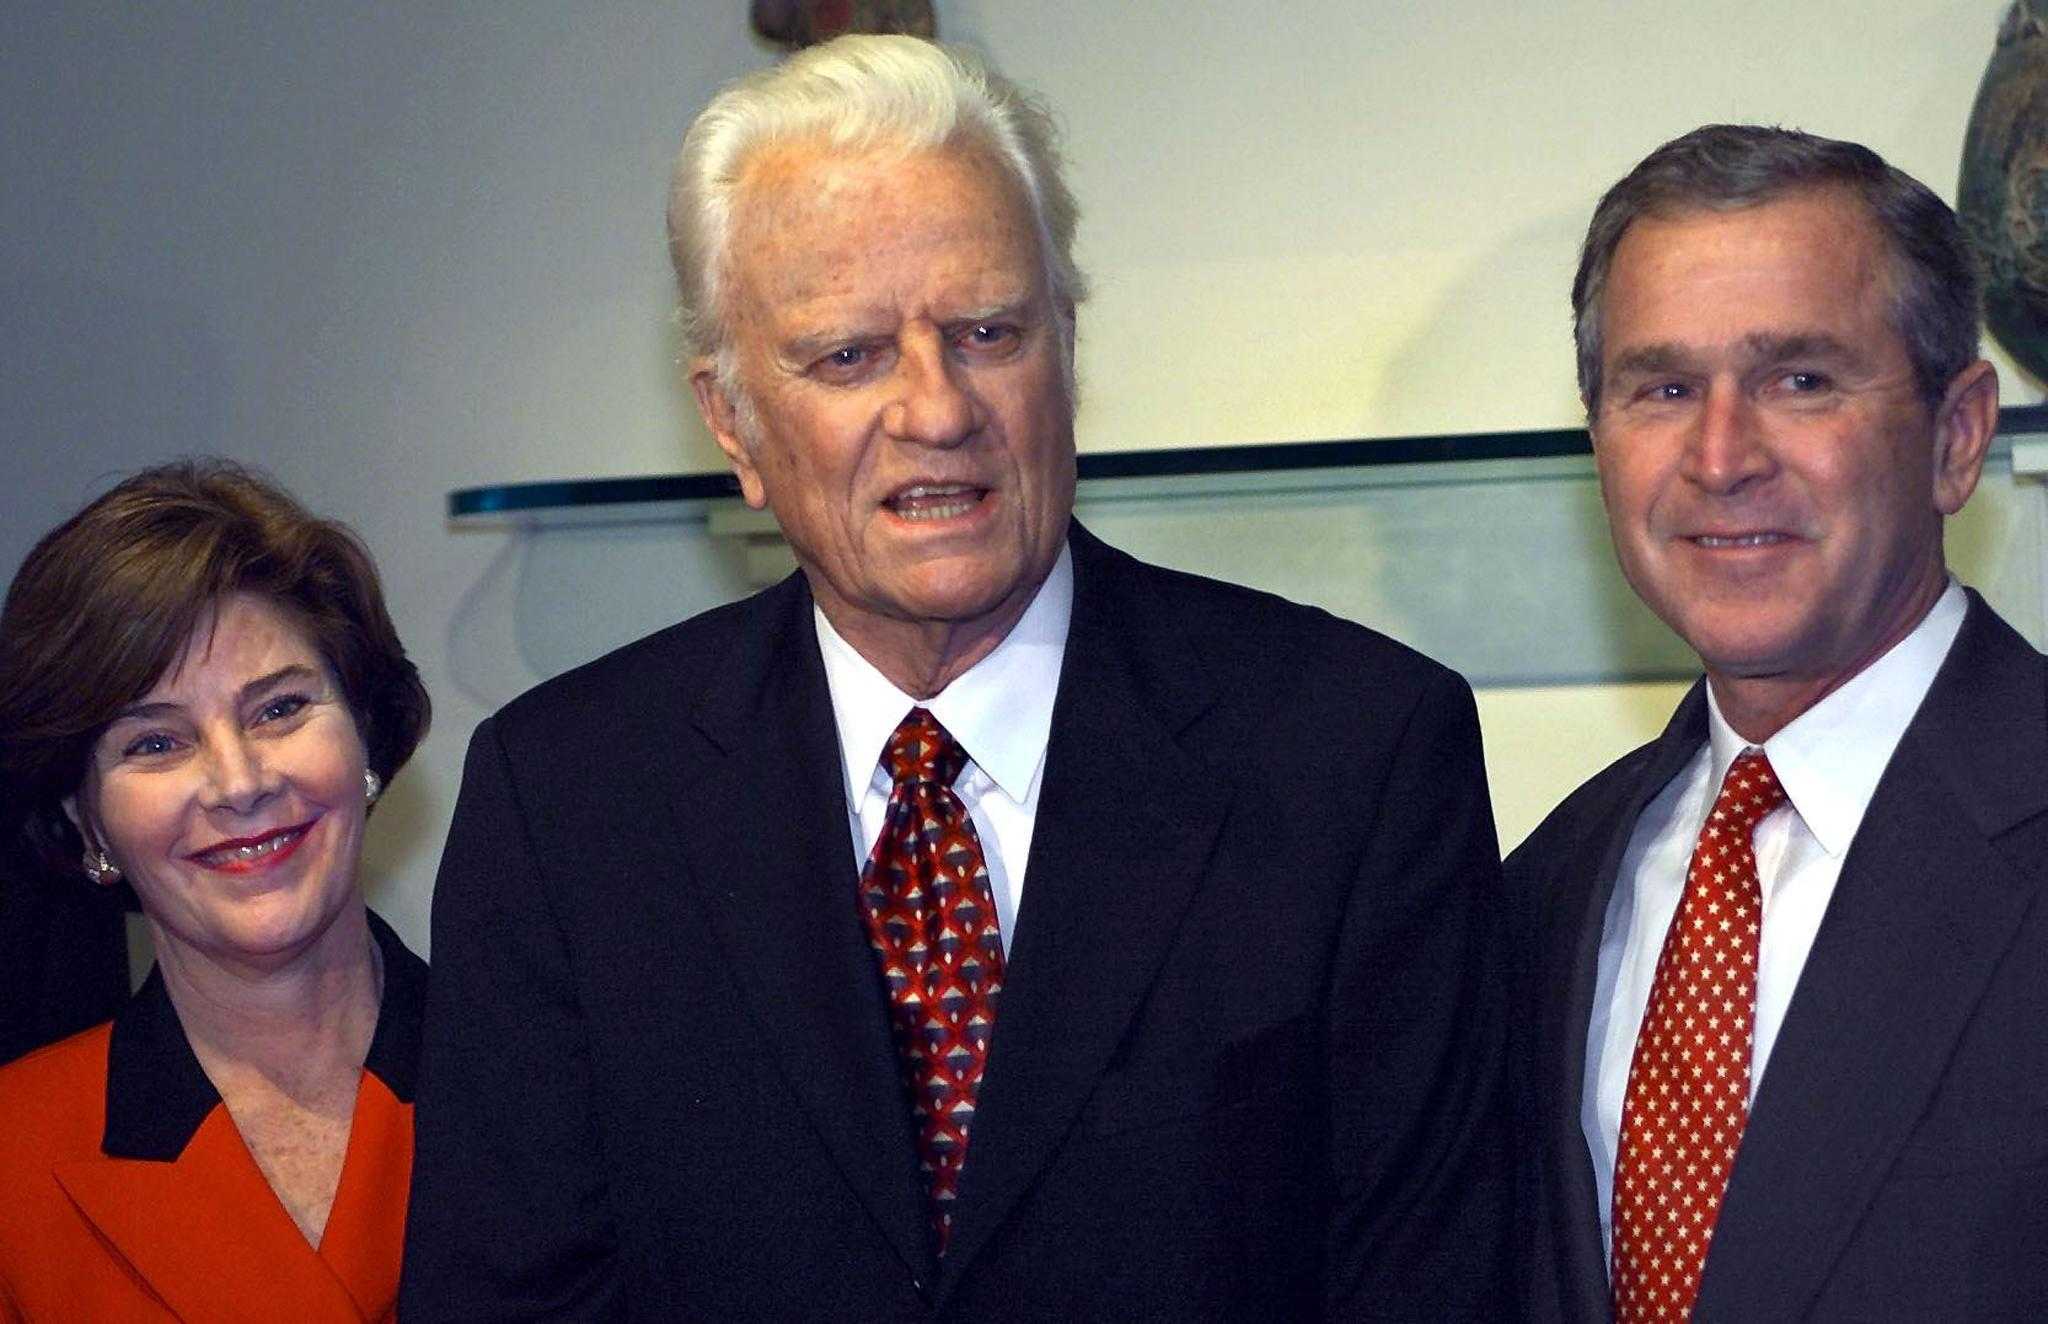 Billy Graham: Political world reacts to his death - CBS News